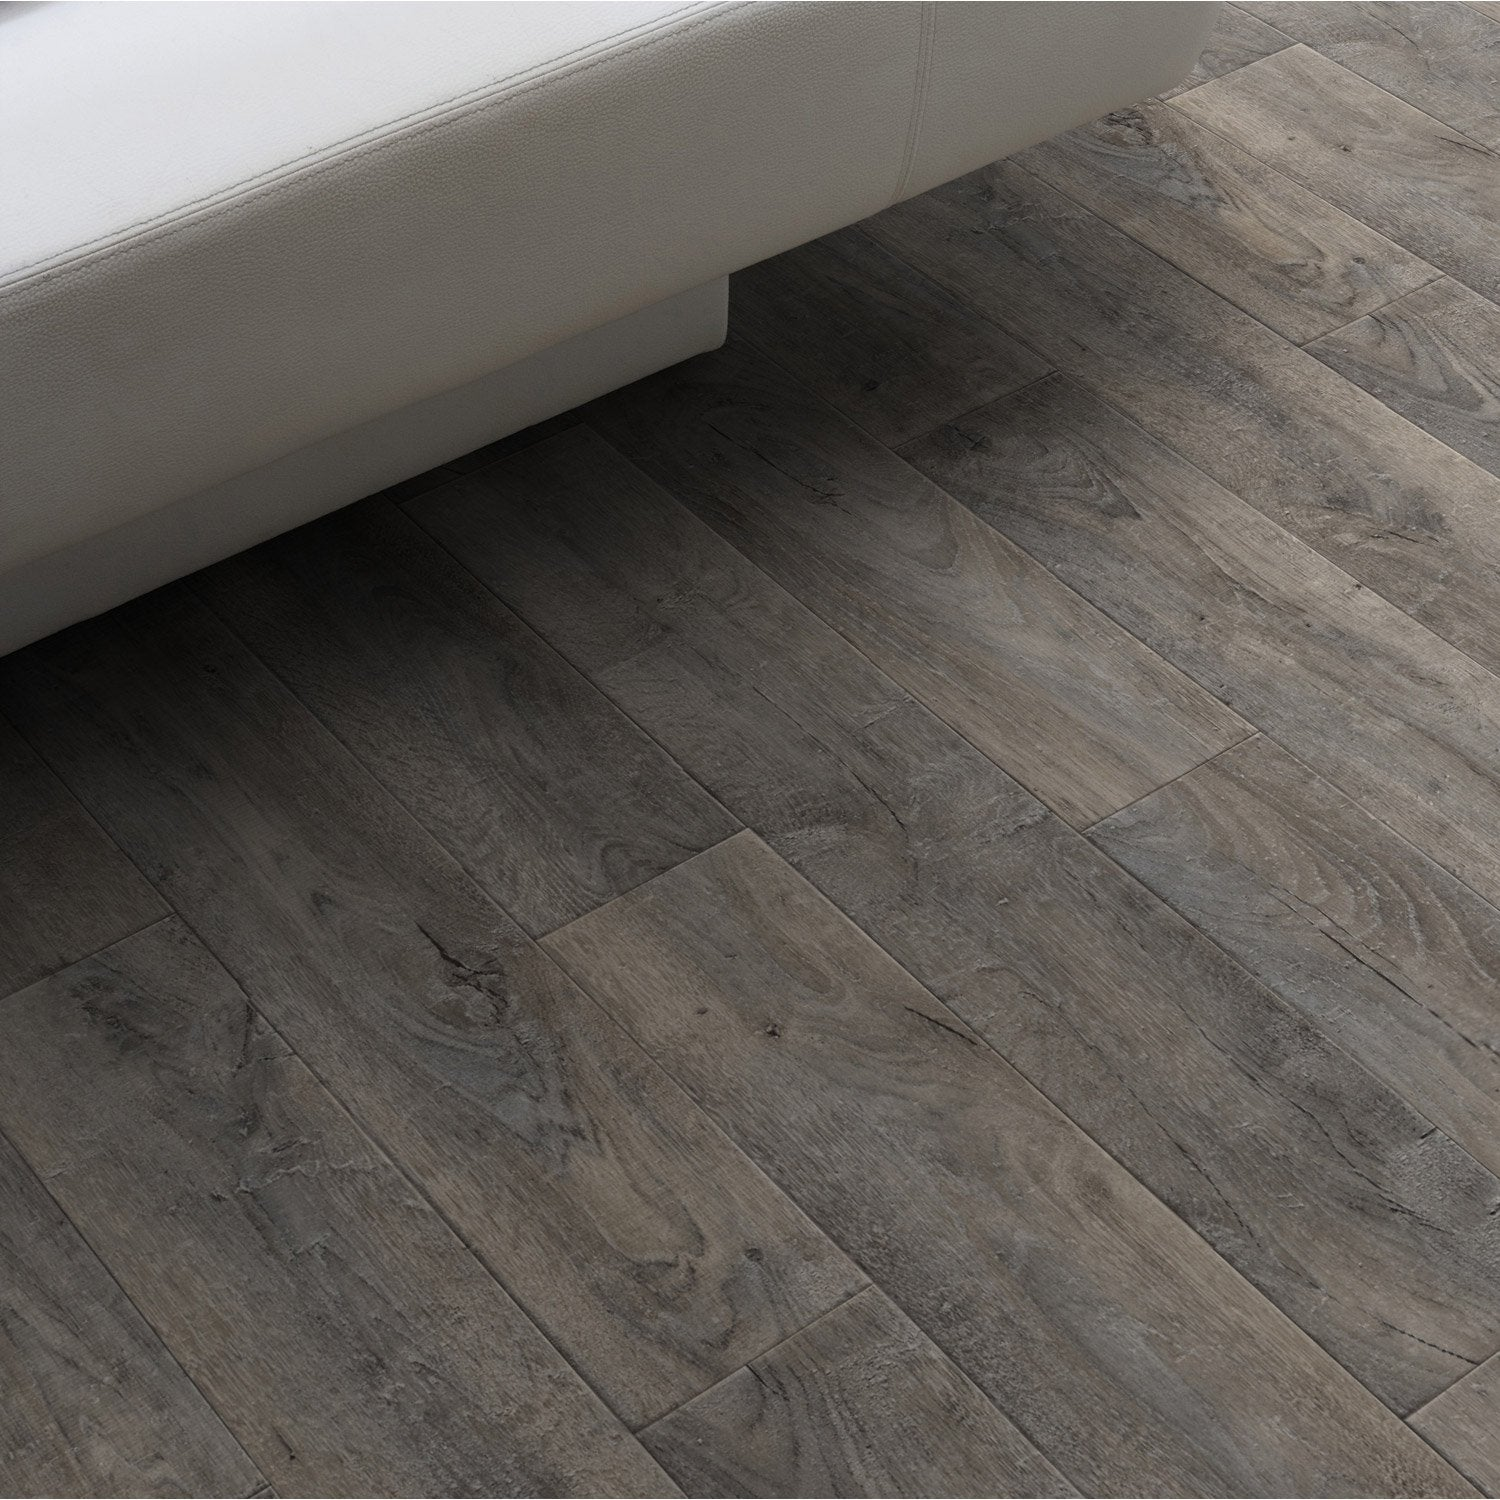 sol pvc marron factory p can gerflor texline l 4 m leroy merlin. Black Bedroom Furniture Sets. Home Design Ideas